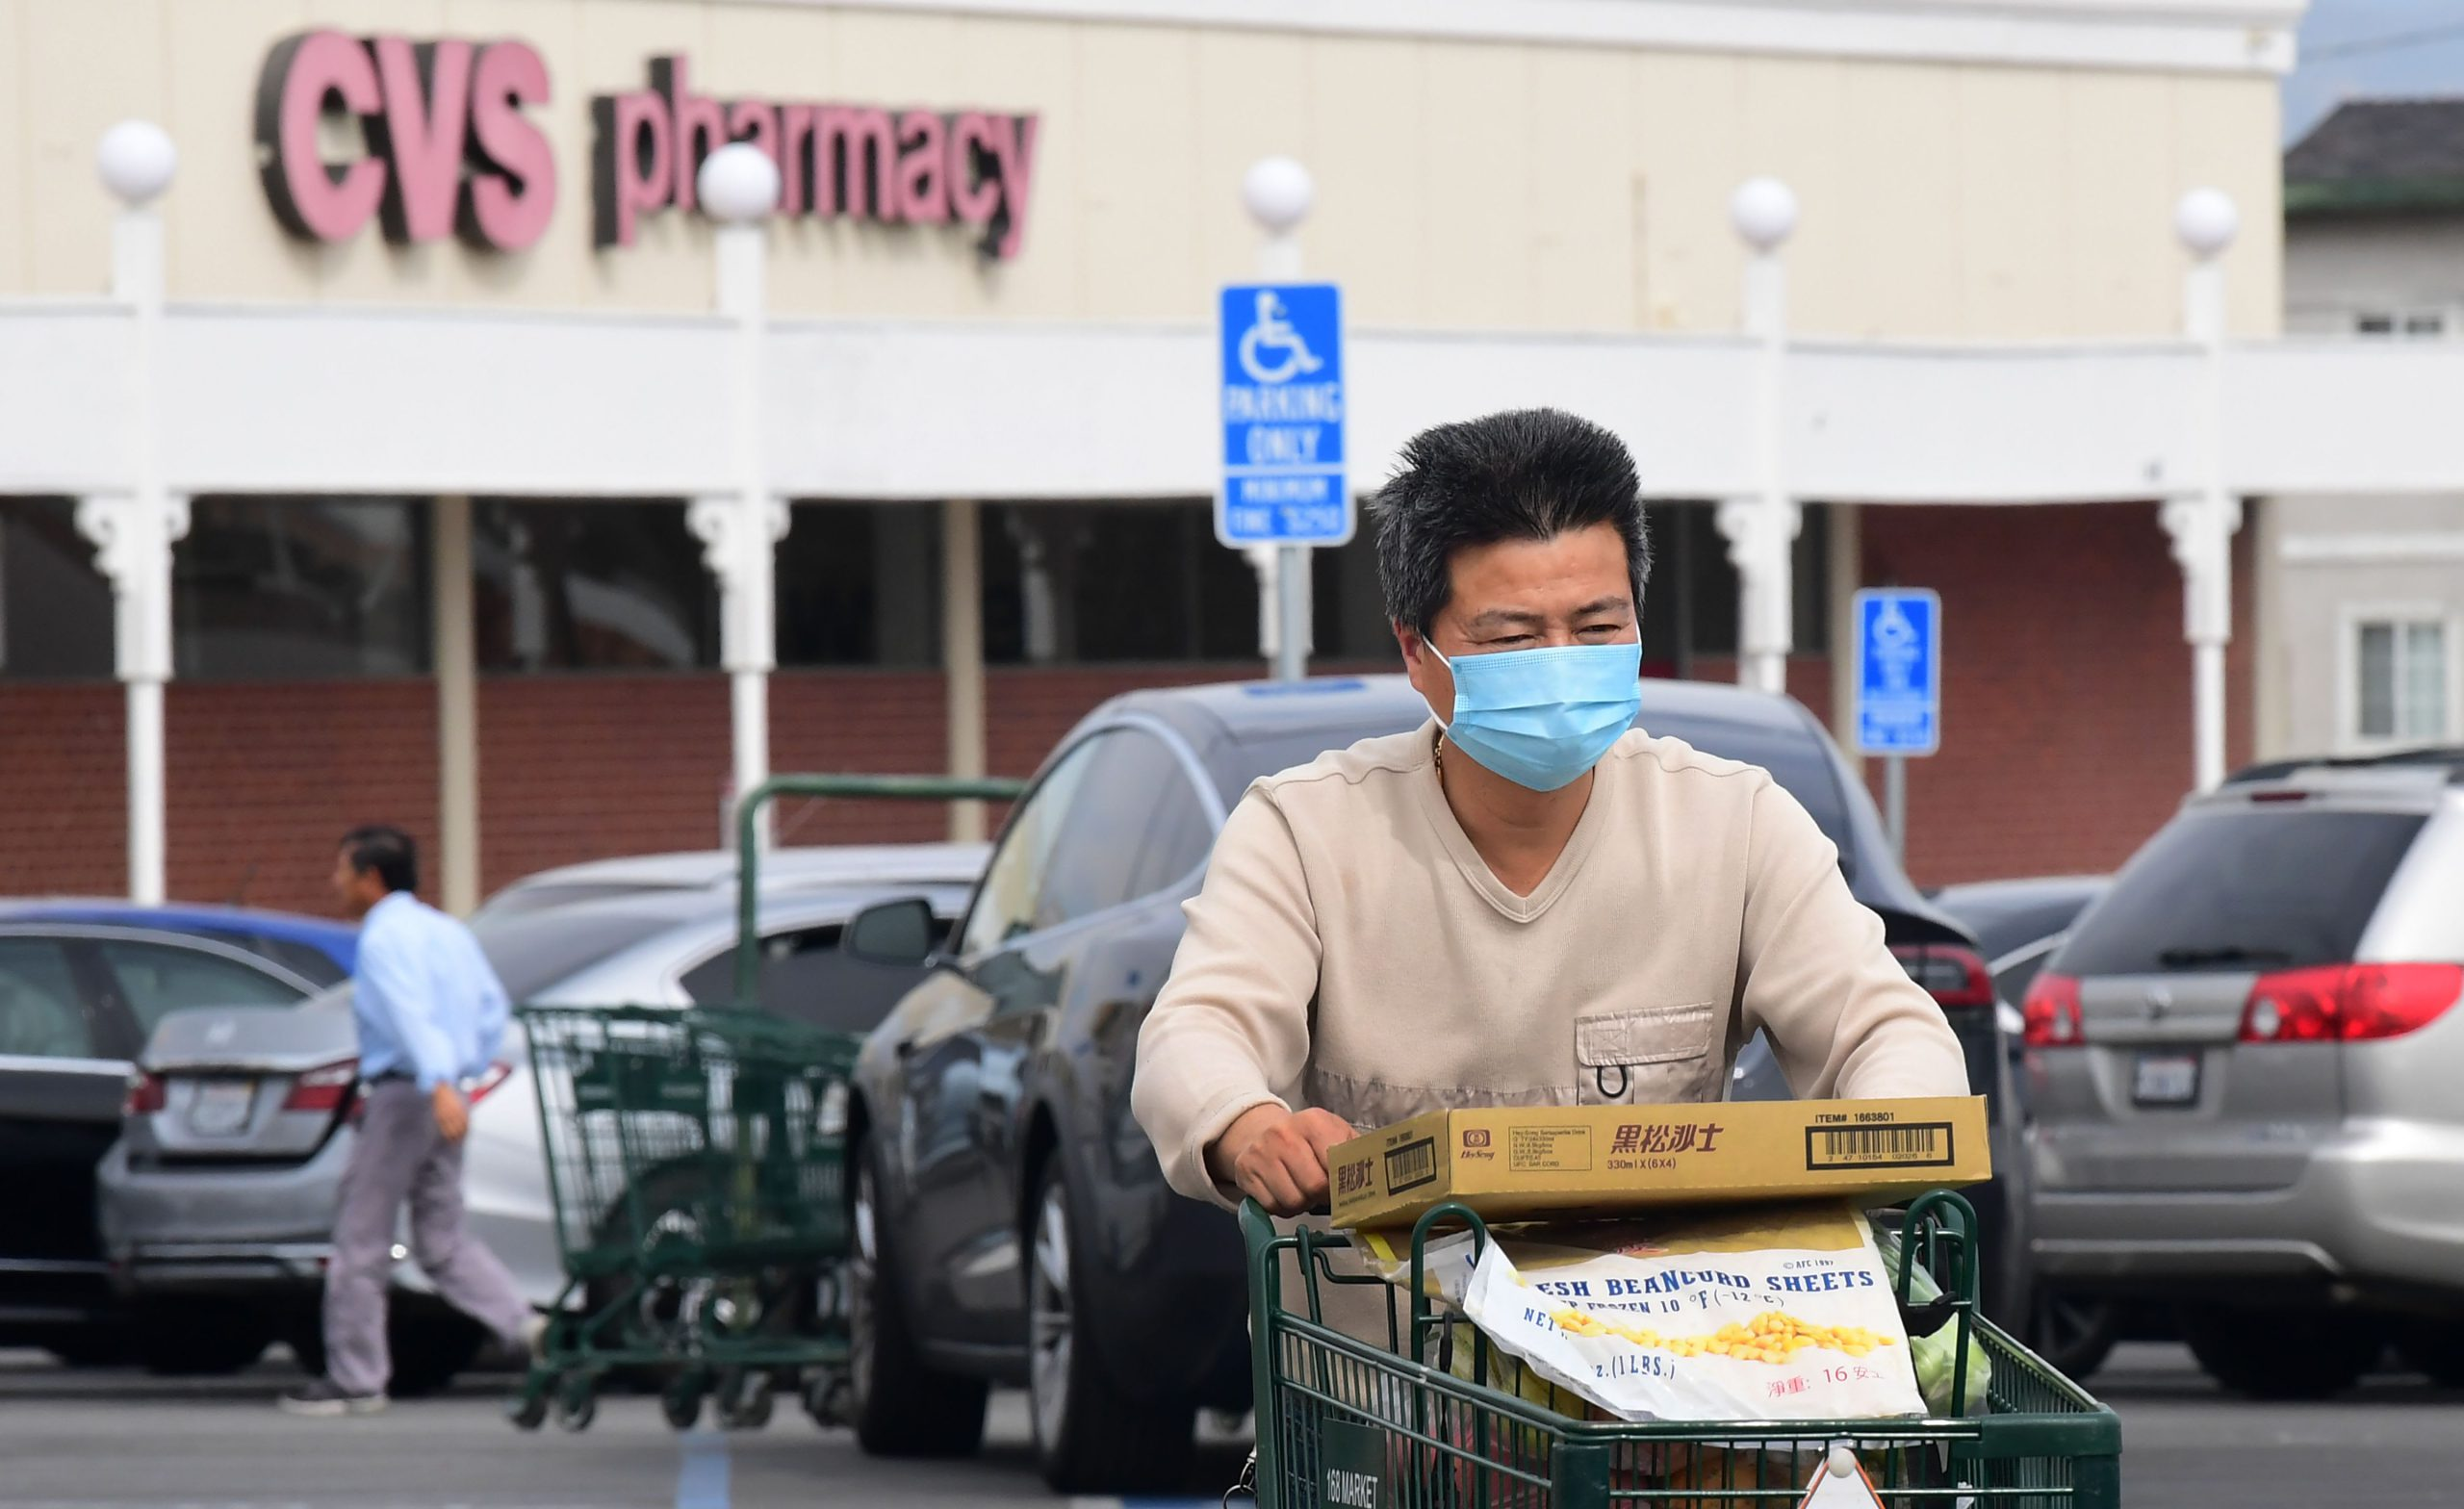 New coronavirus case in California is 'evidence of community transmission,' county health officials say